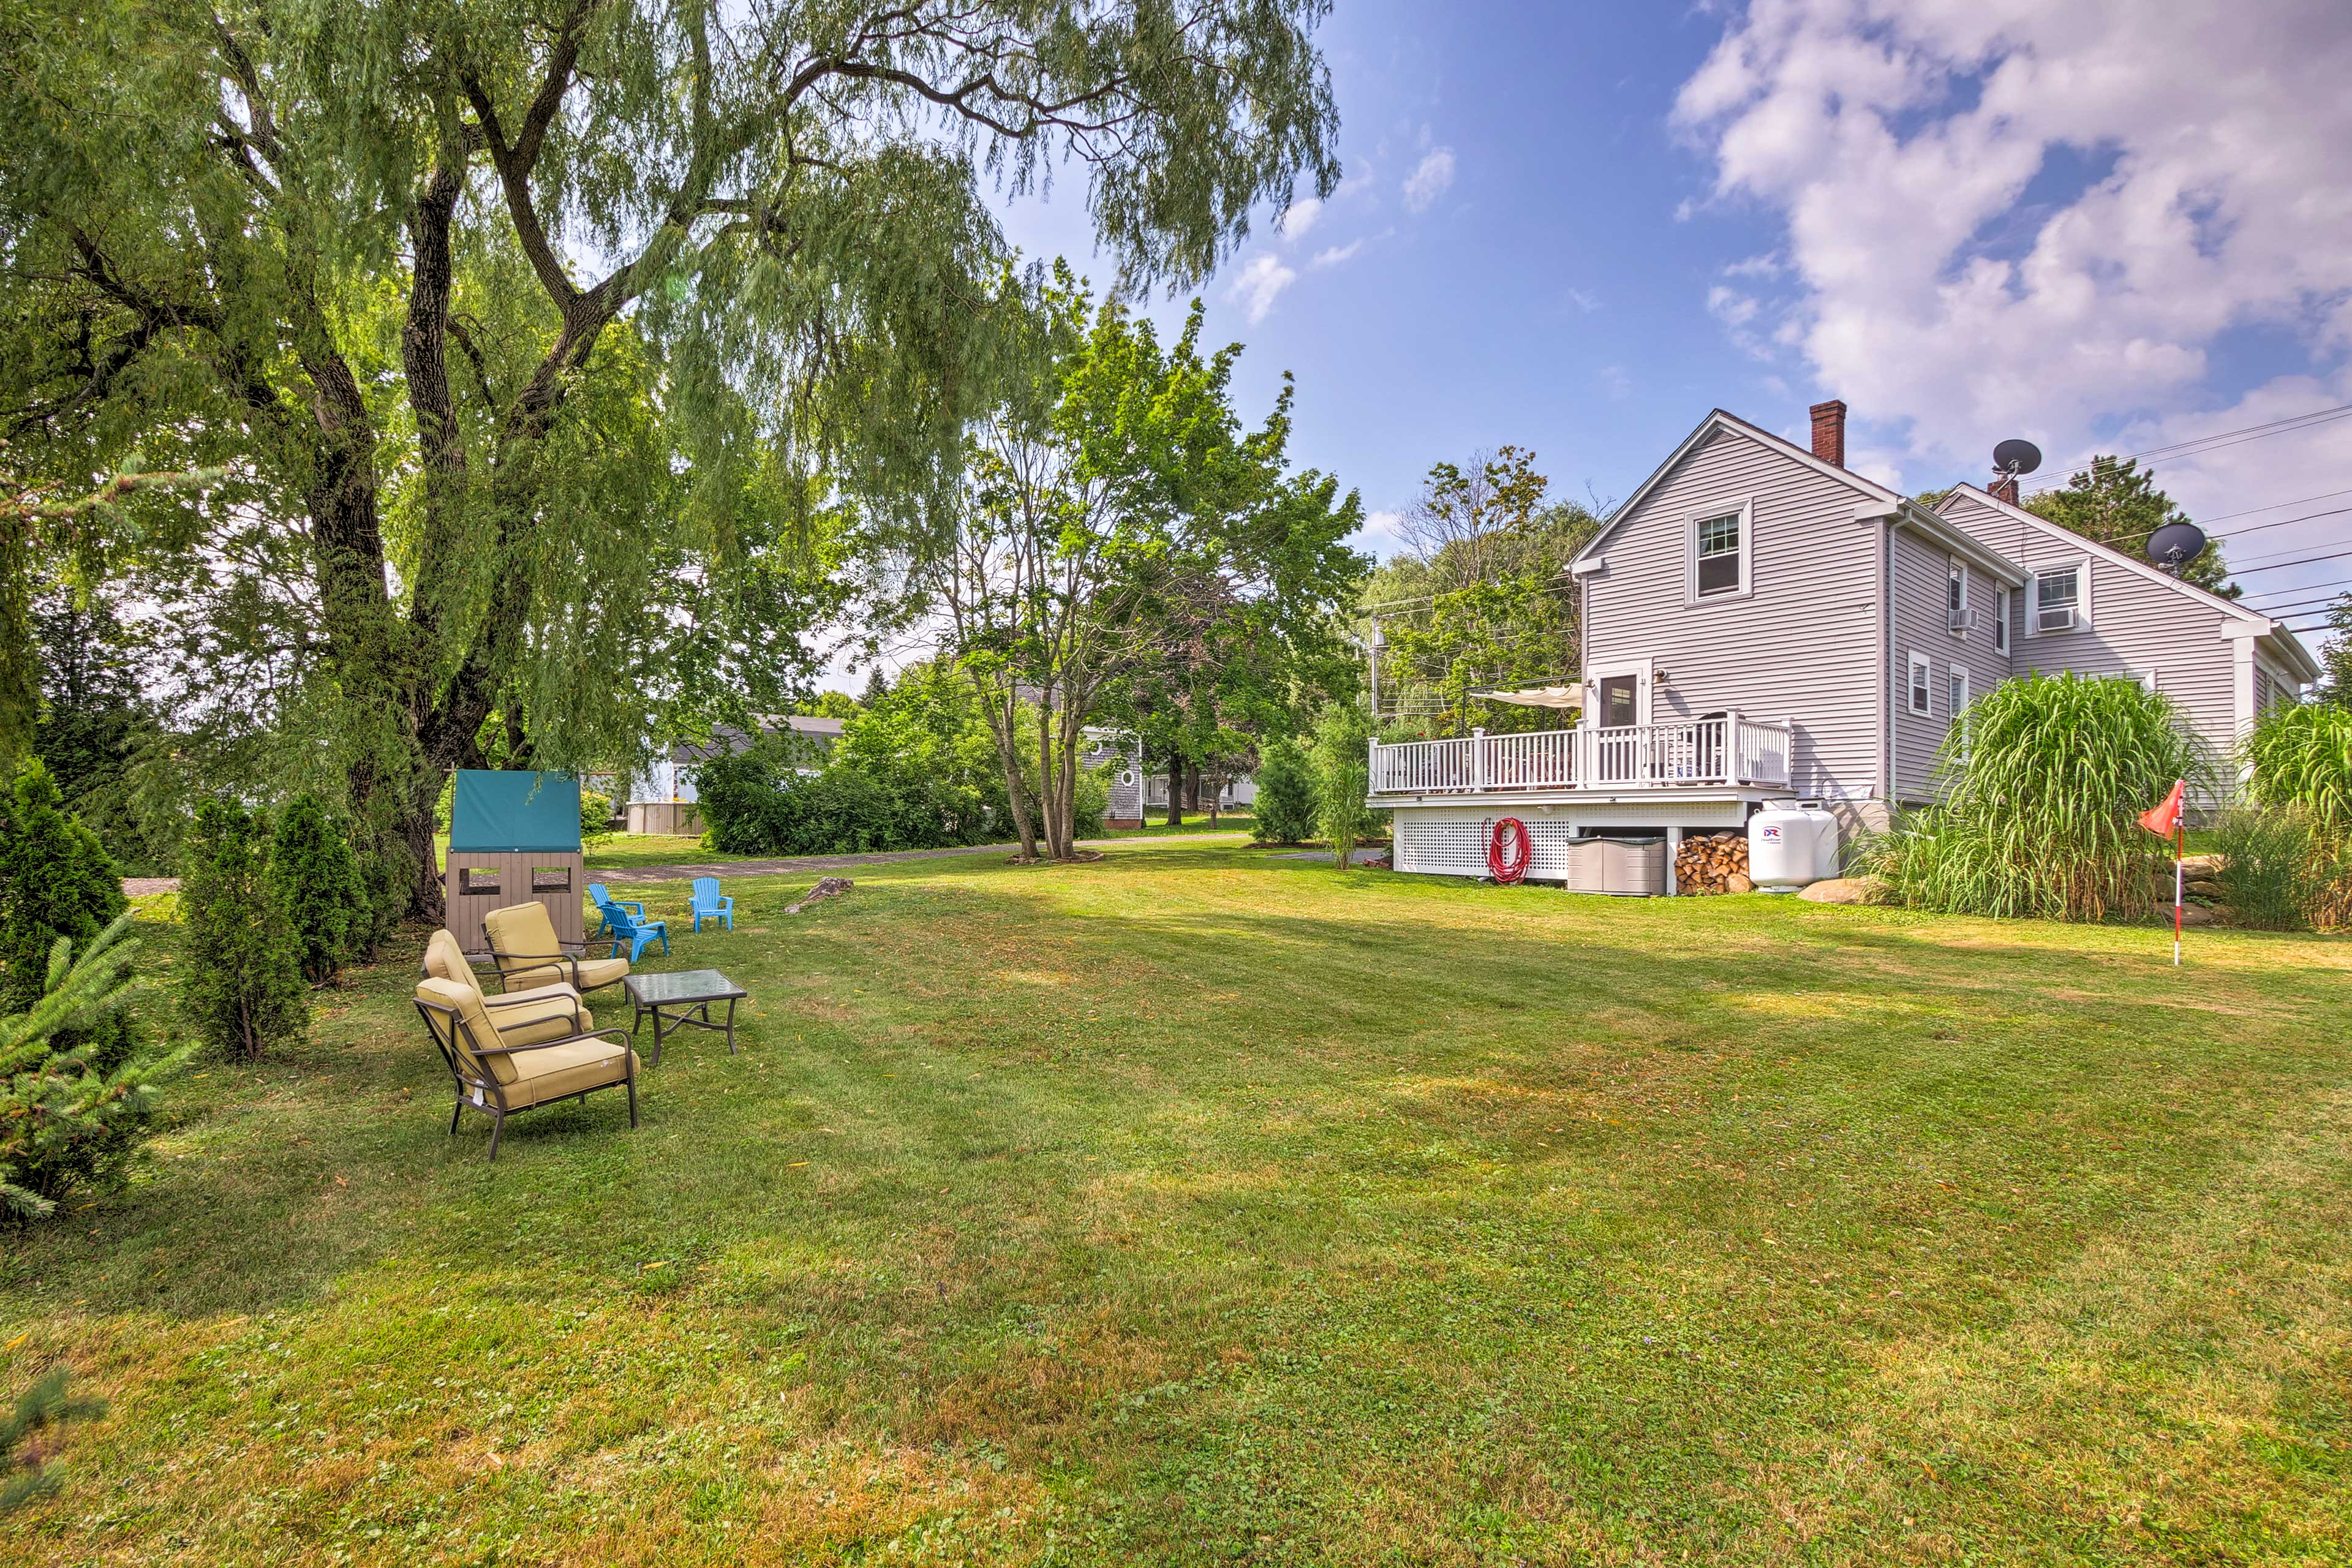 The backyard offers tons of space to run around and play.